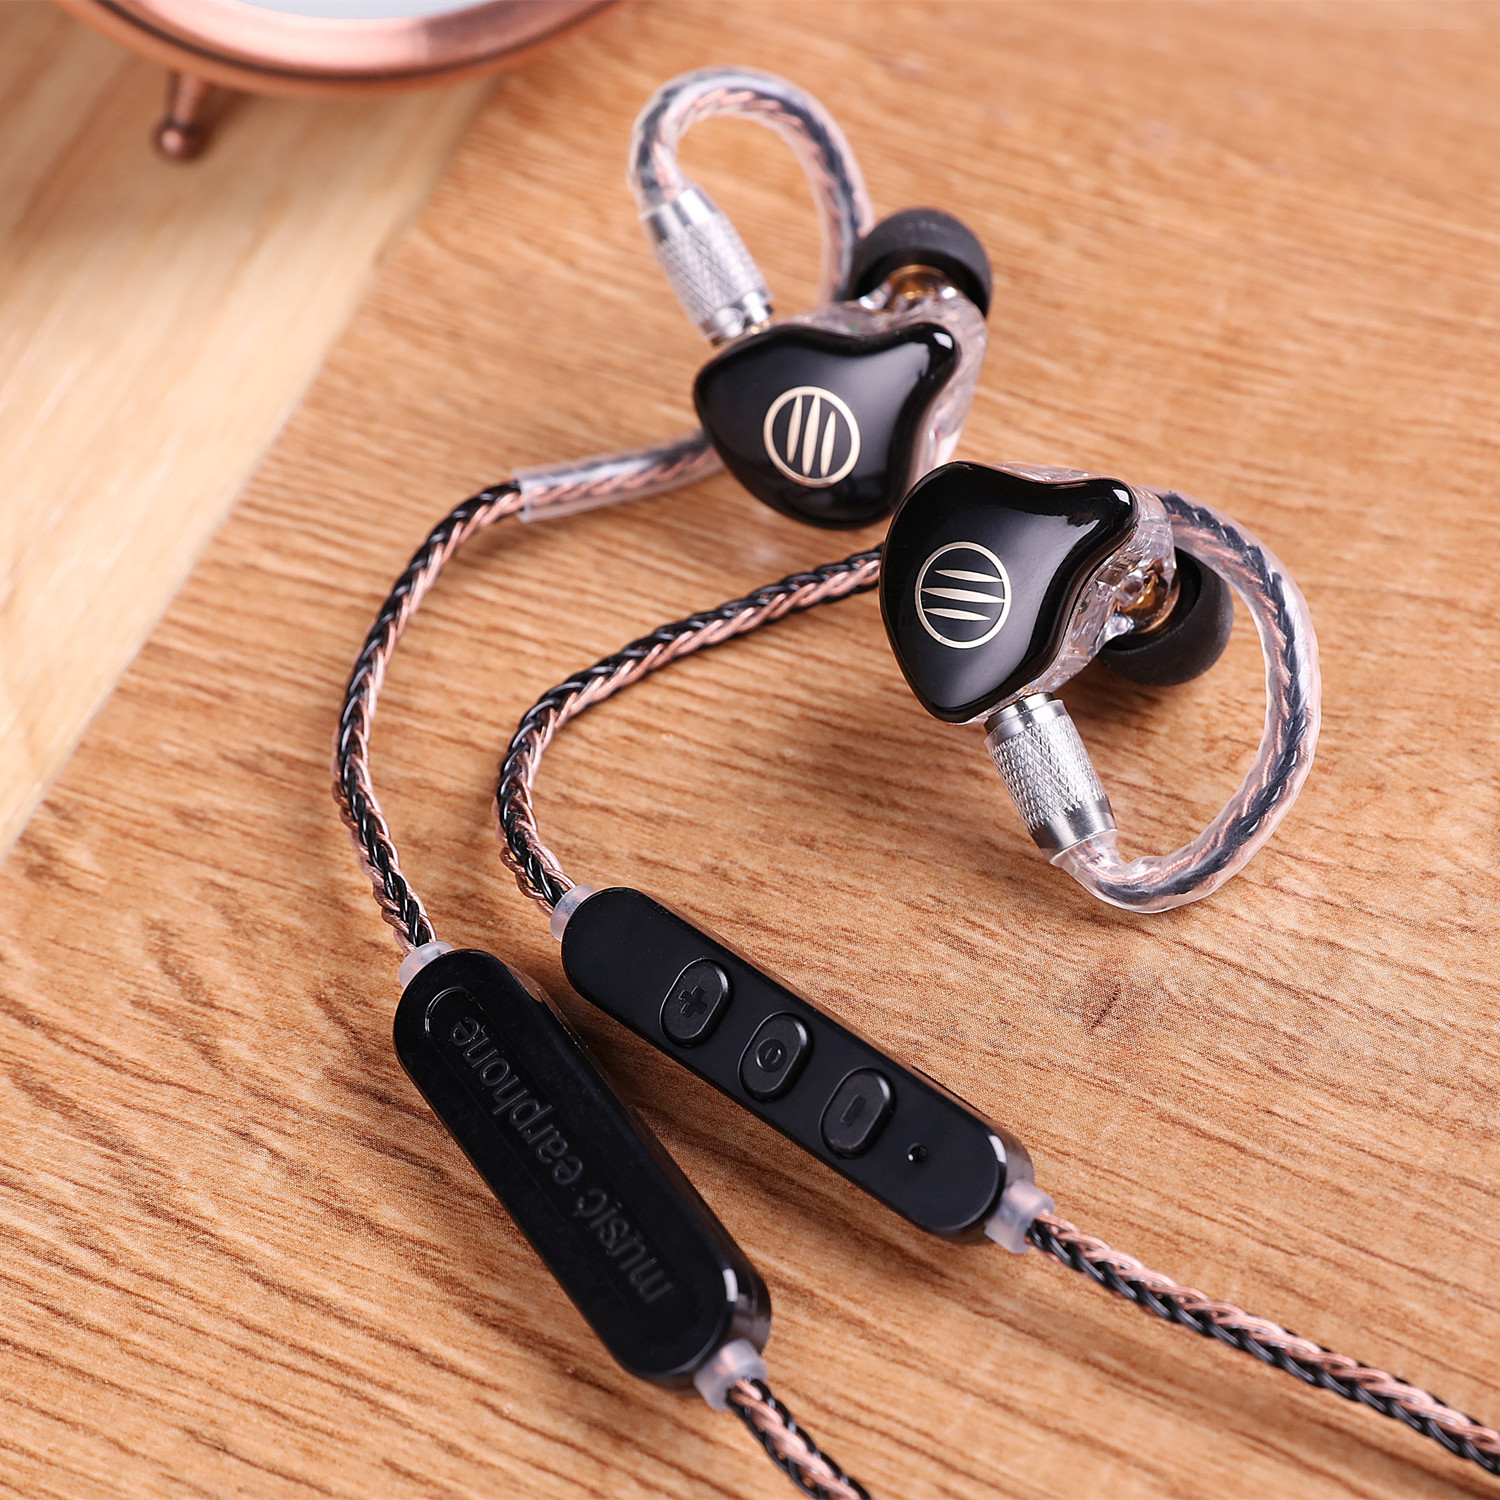 BGVP M1 Headset Bluetooth 4.1 APTX Cable MMCX Line HiFi In ear Wire Single Crystal Copper Plating Upgrade Cord For DM5 DS1 Shure|Earphone Accessories| |  - title=